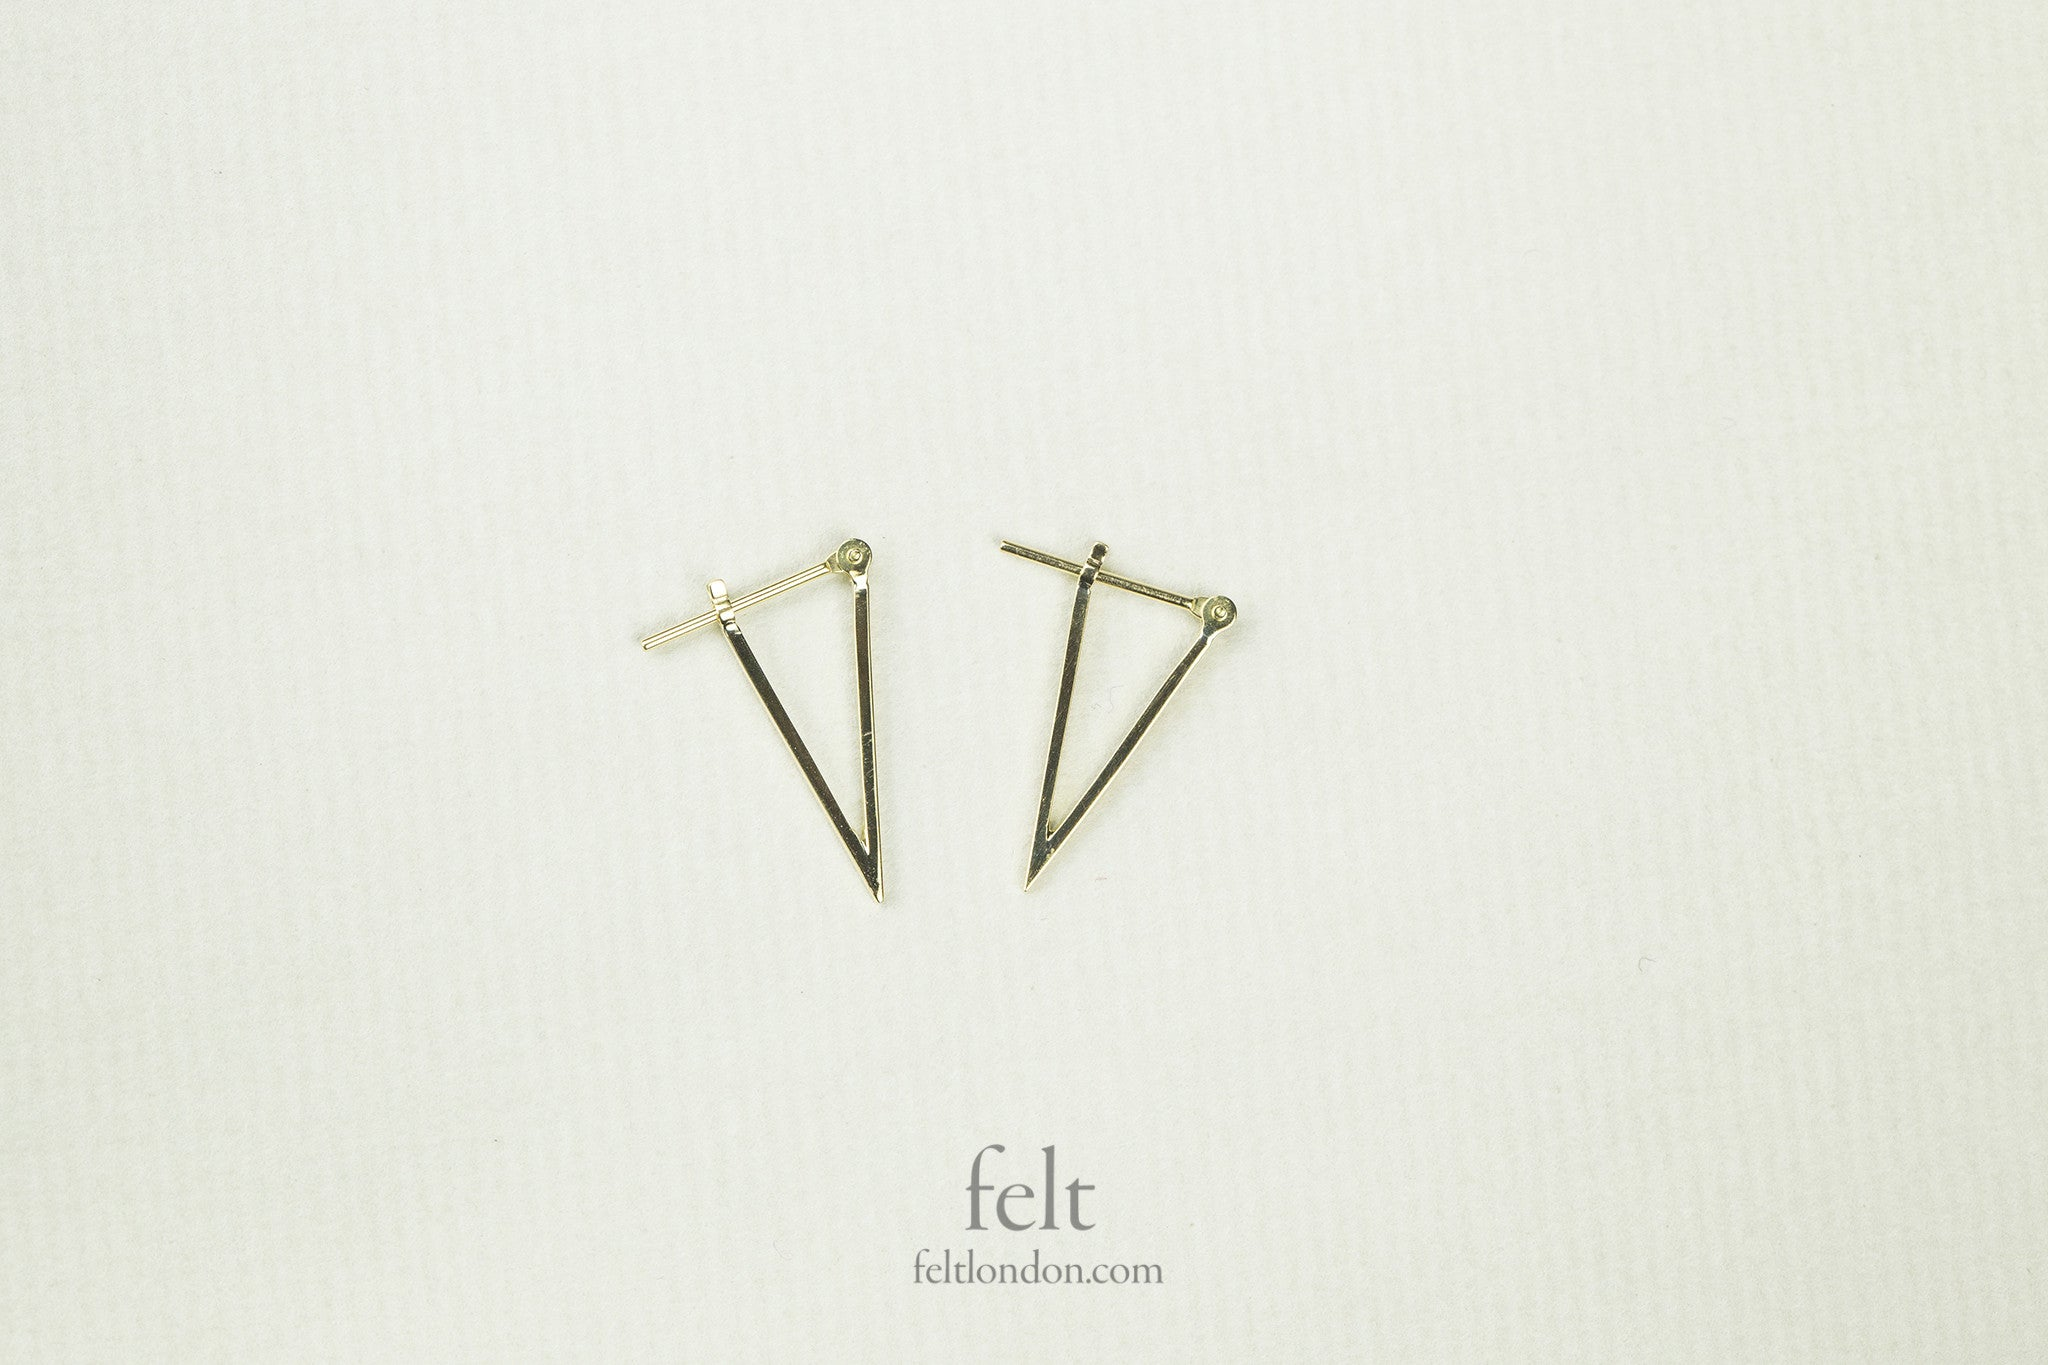 fantastically quirky 'pointy' hoops from e.m. Mehem